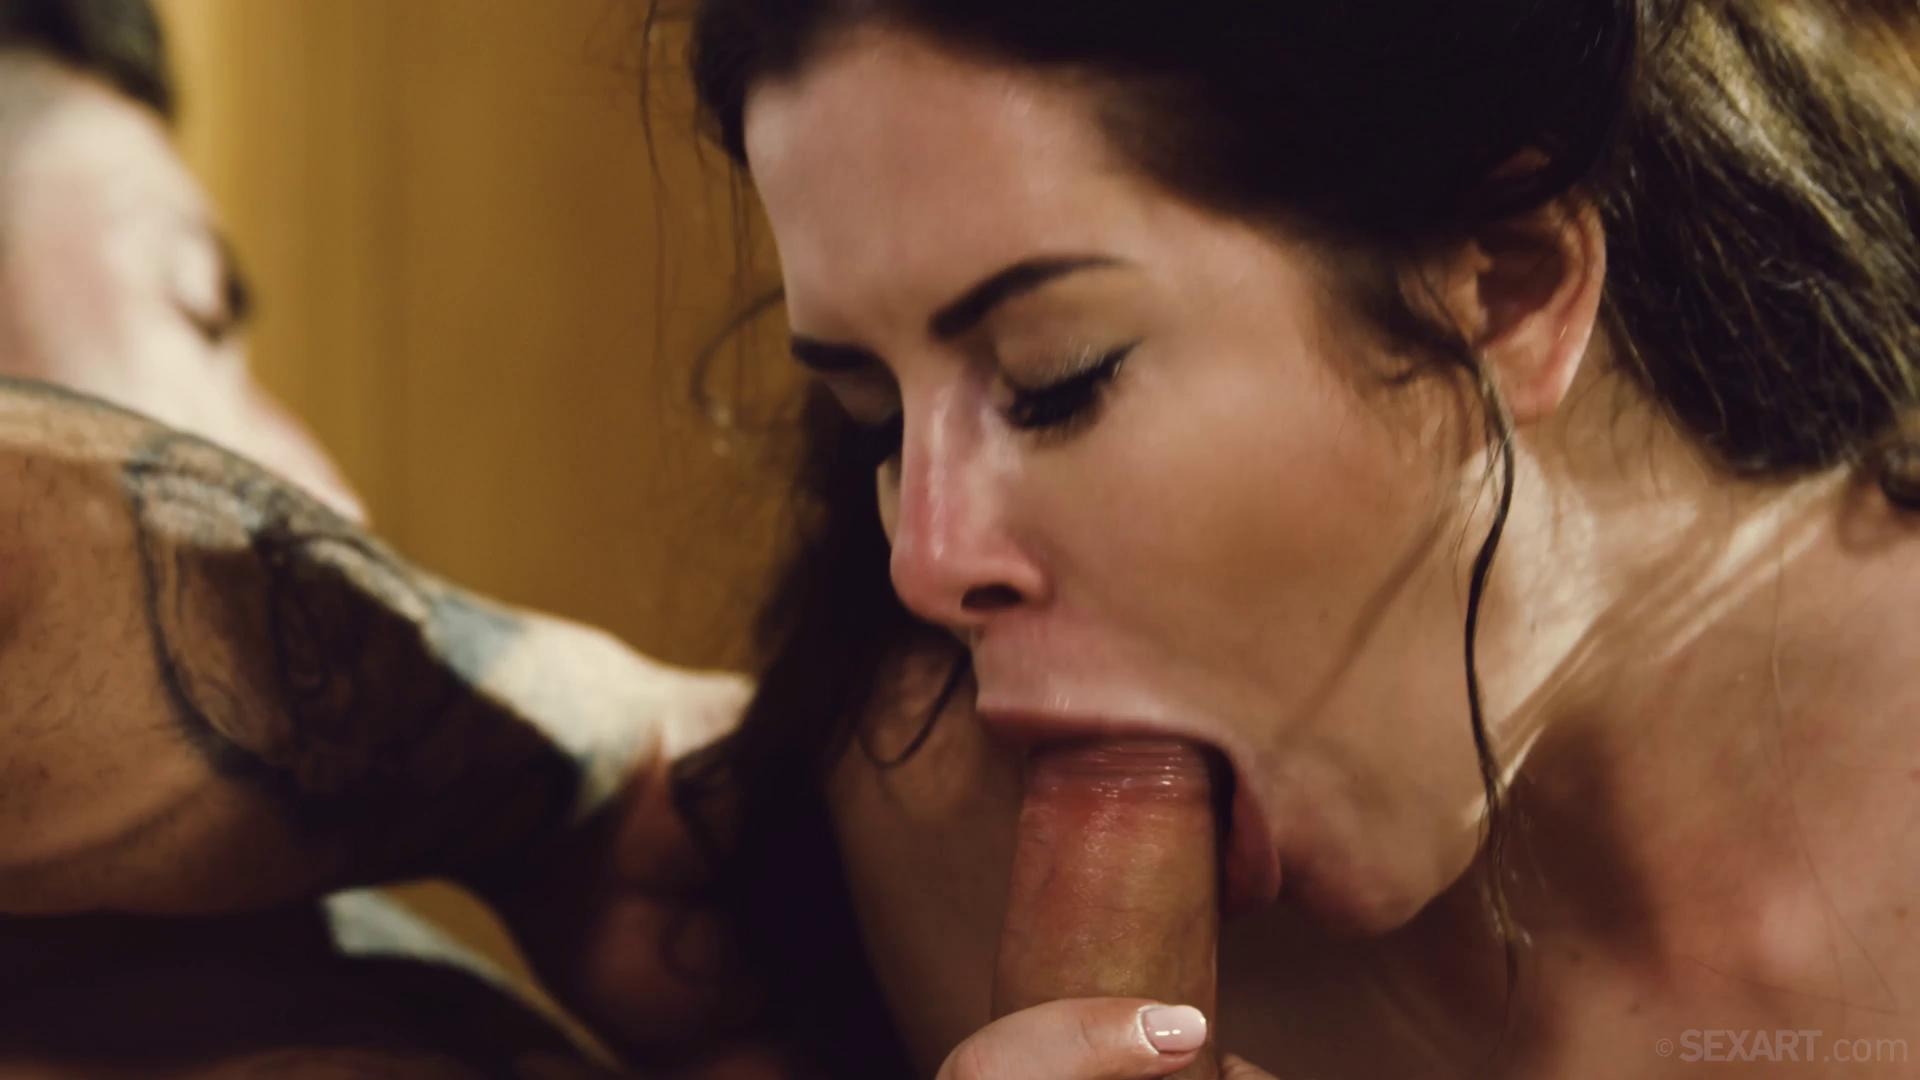 SexArt – Cassie Fire Arousal